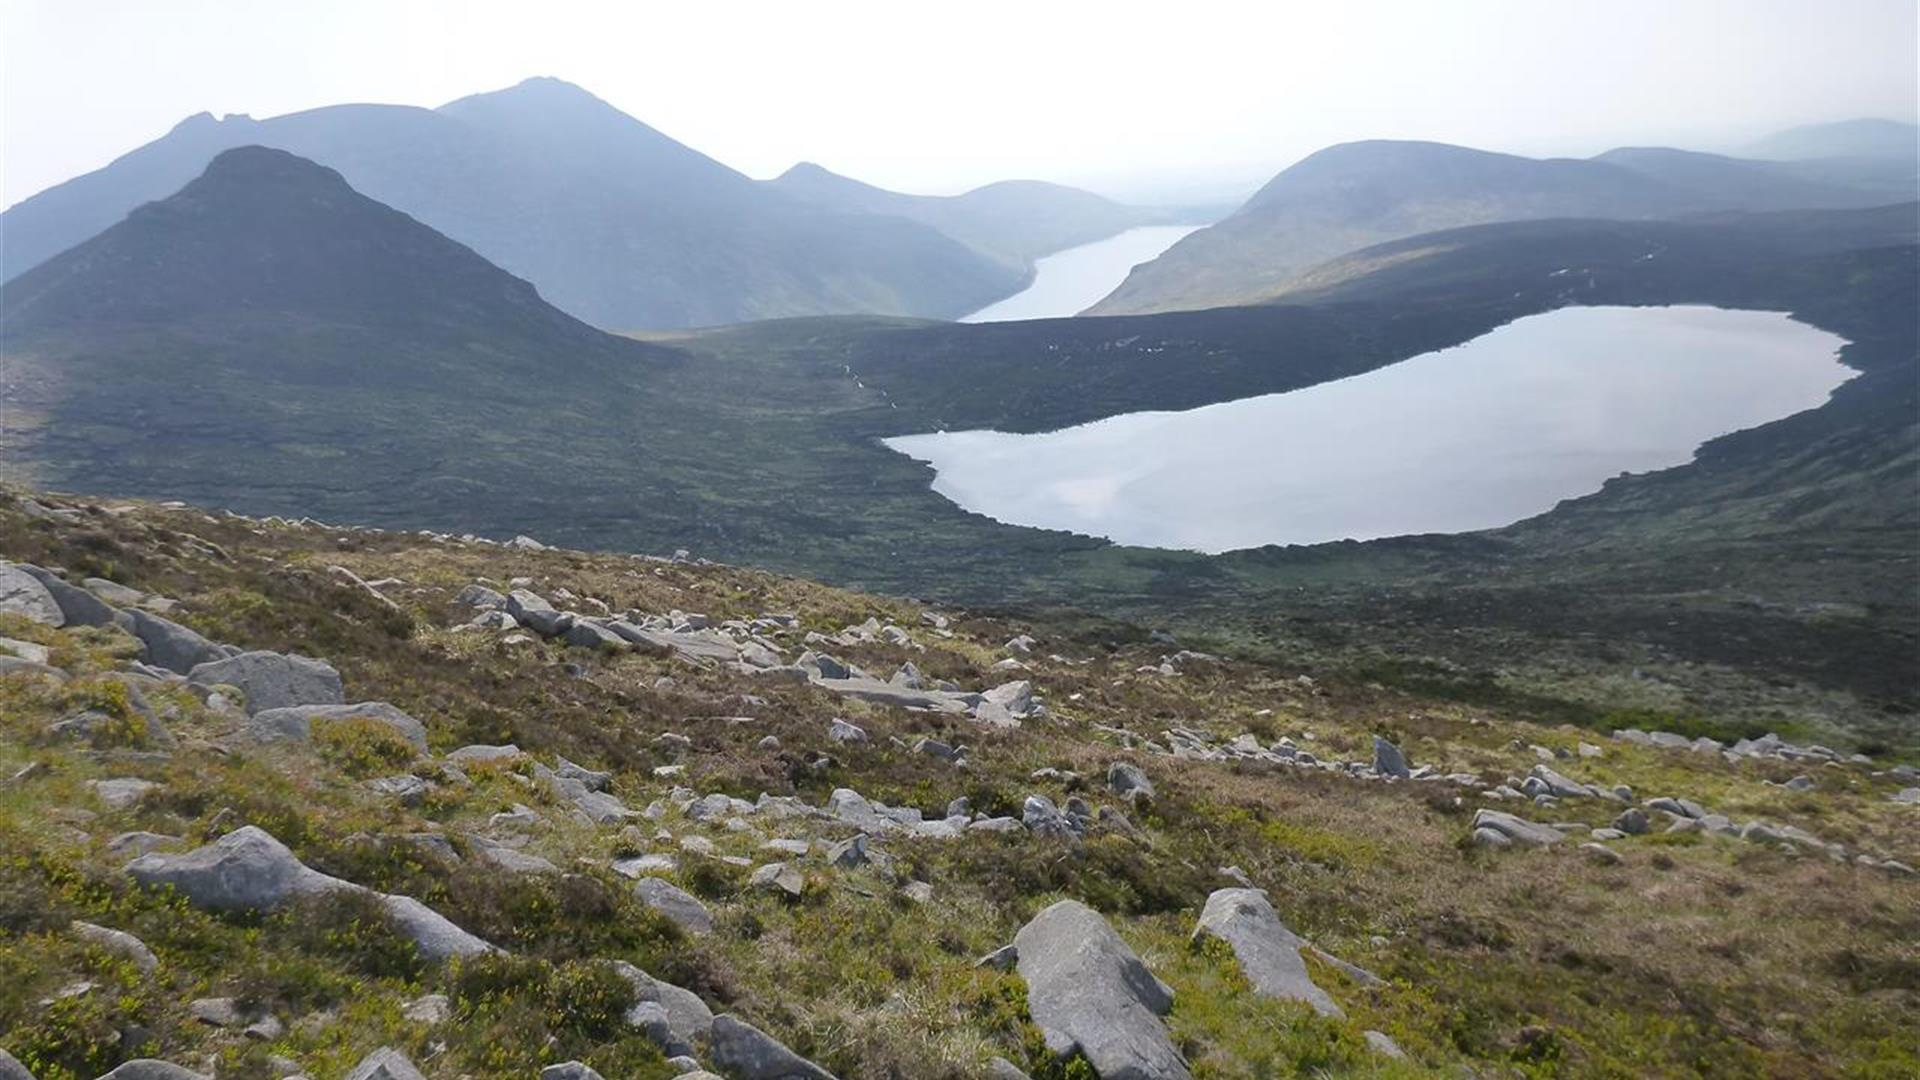 Lough Shannagh - The Heart of the Mournes